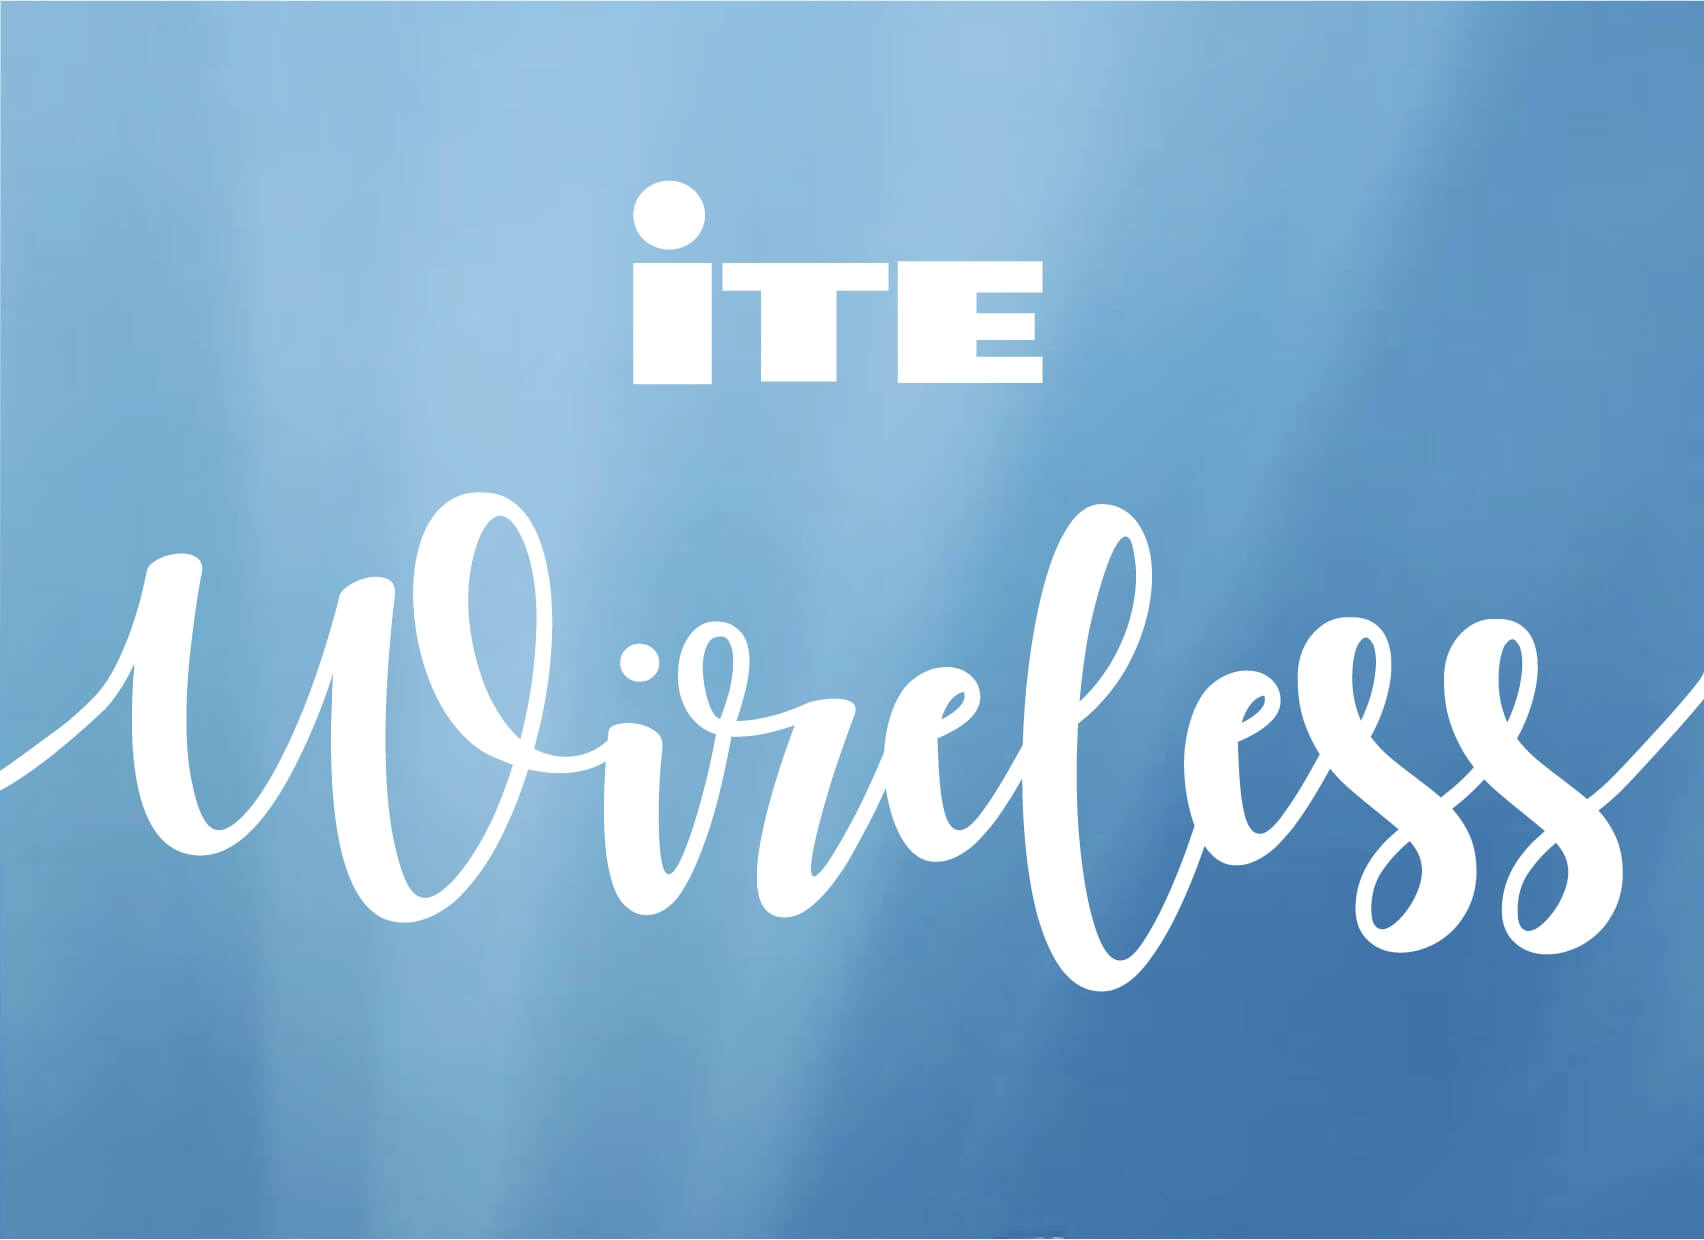 iteWireless